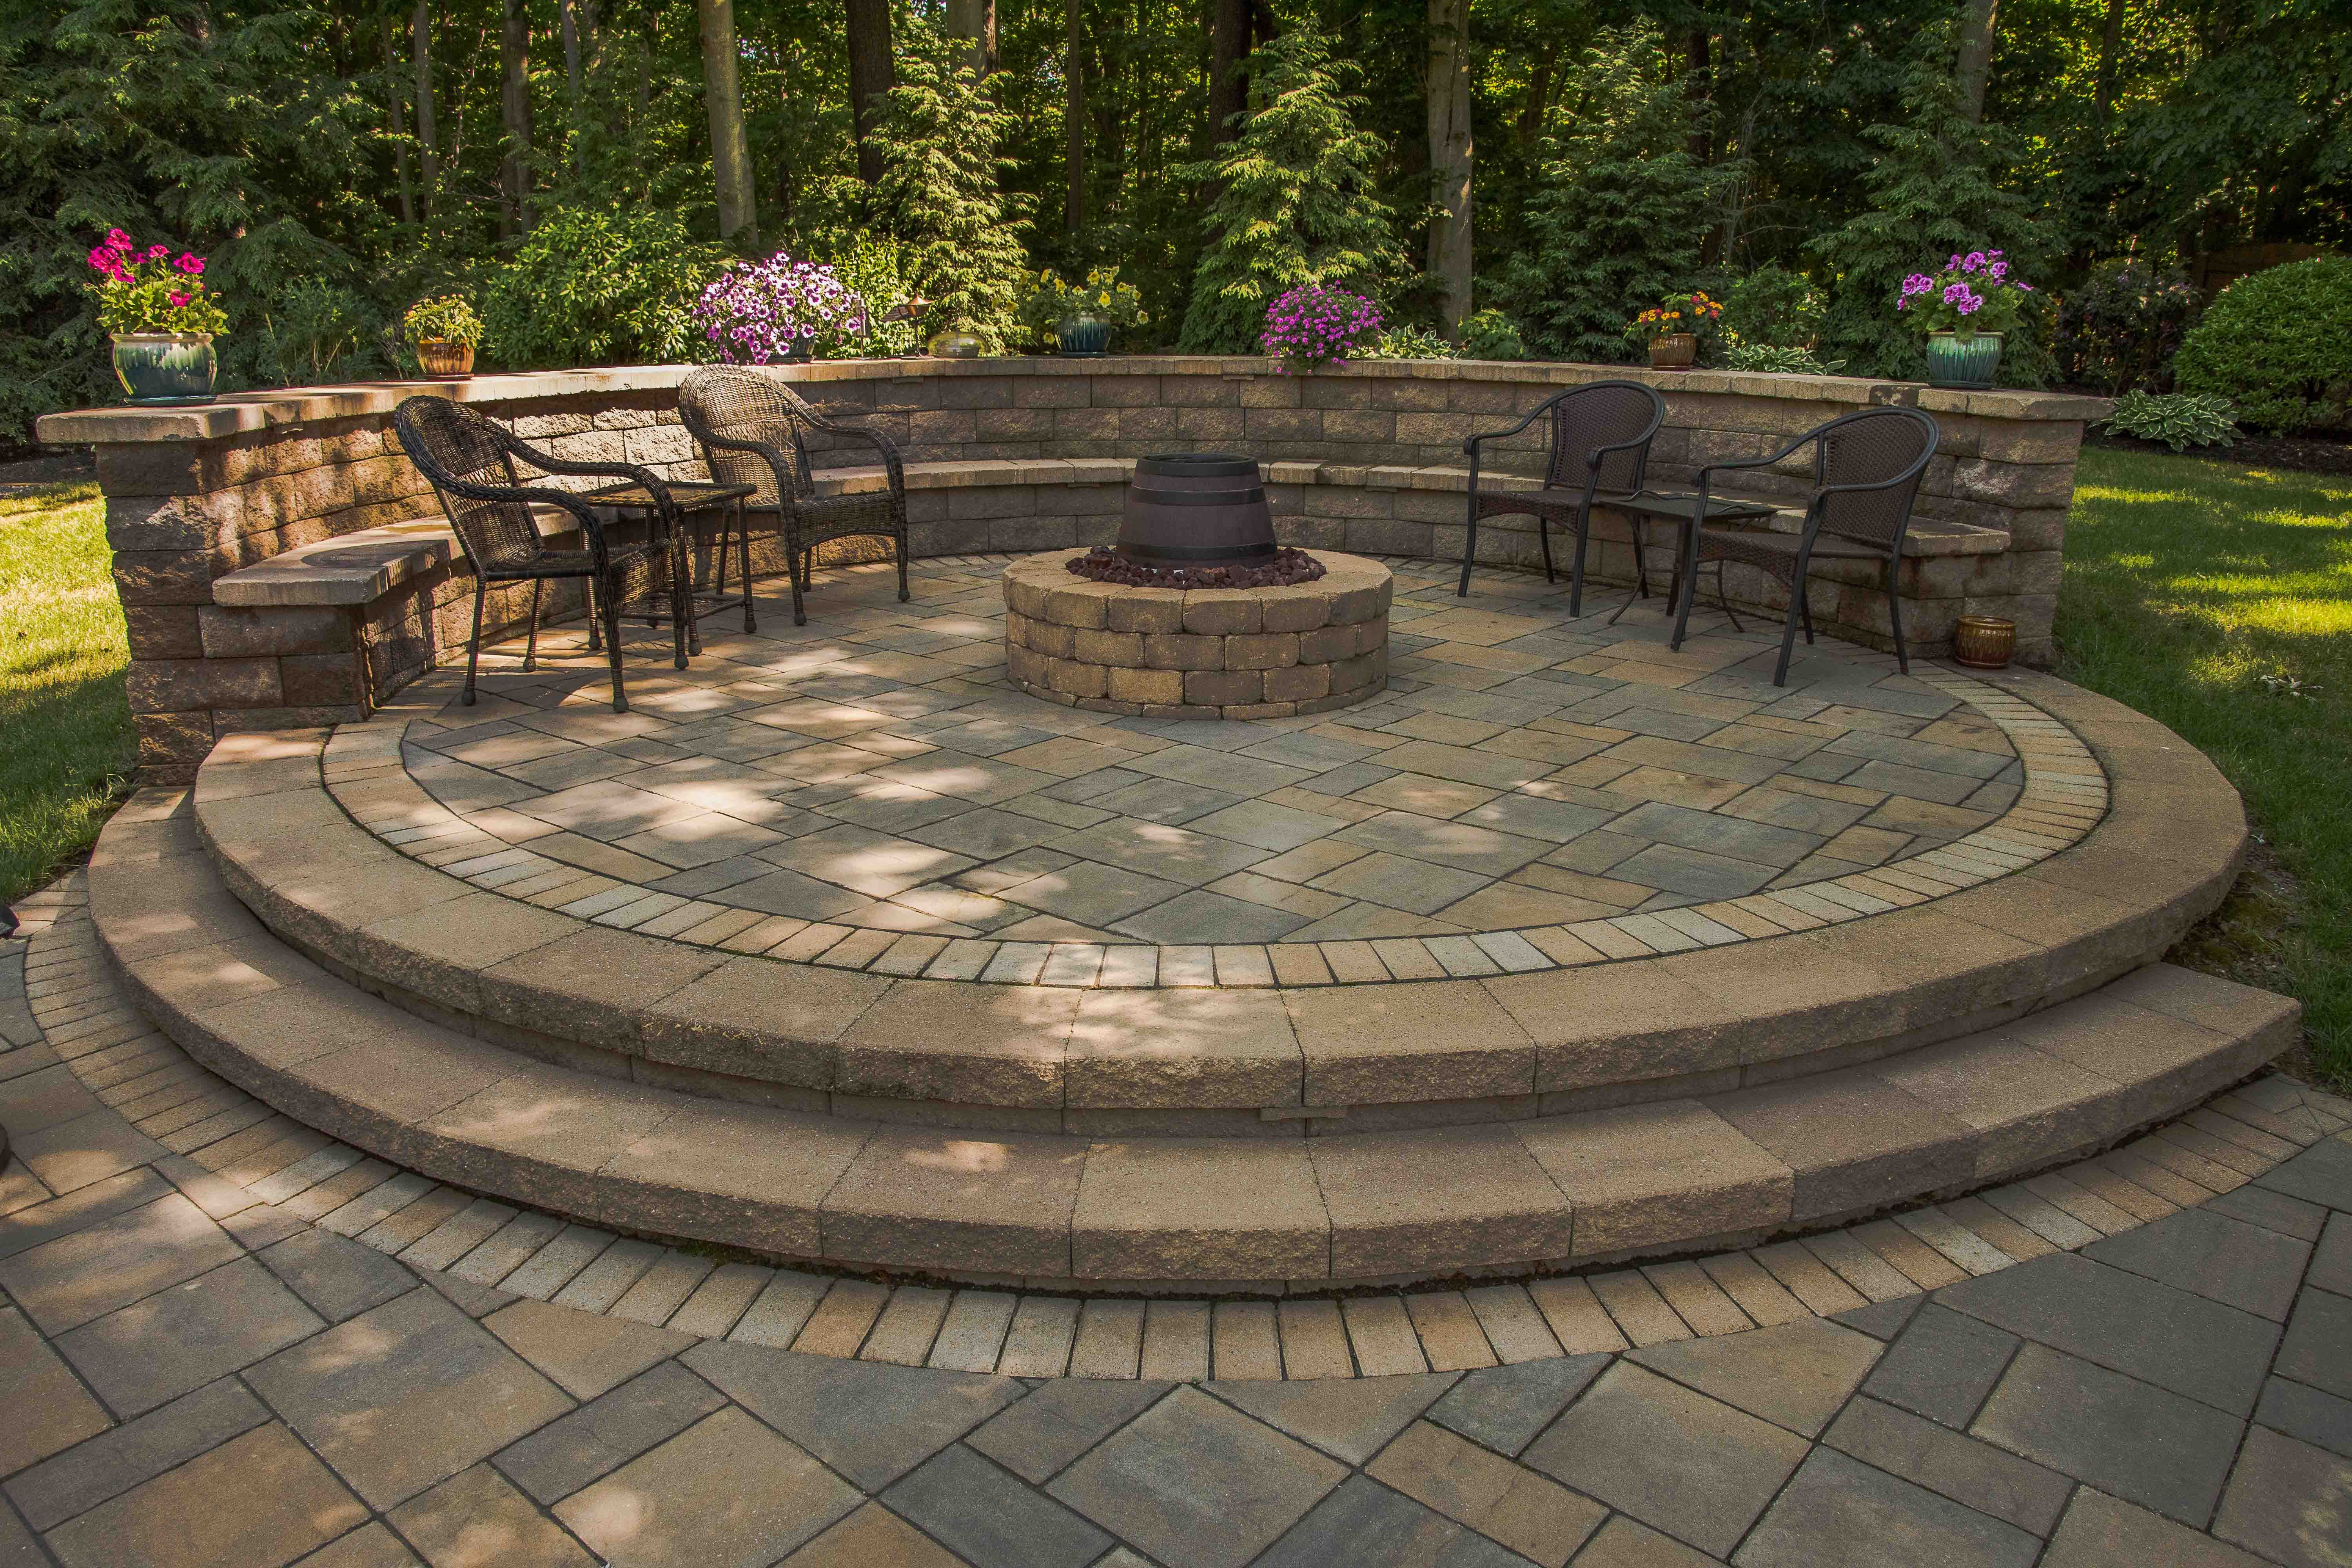 Raised paver patio | Gas Fire pit | Sitting wall with ... on Pavers Patio With Fire Pit id=72748